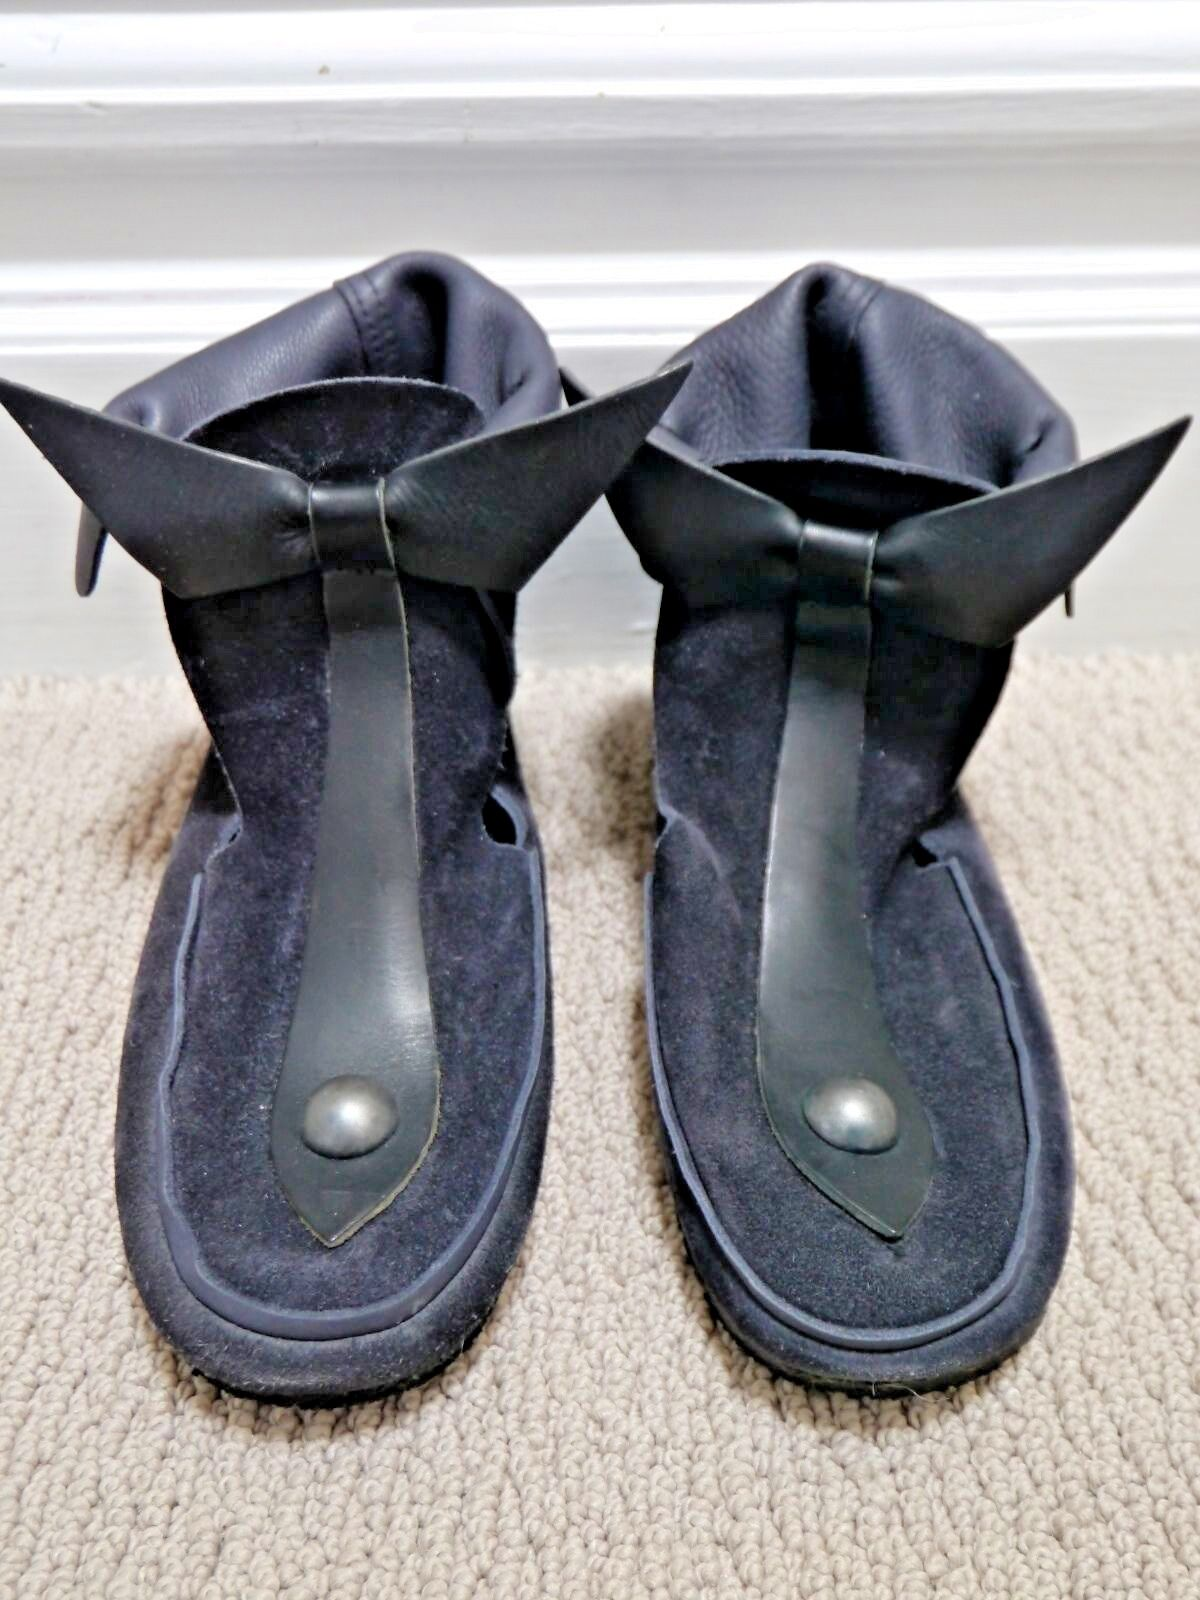 ISABEL MARANT MARANT MARANT  965 black suede Memphis Bow Tie Loafer Moccasin Boot 37 WORN ONCE 00c4b8